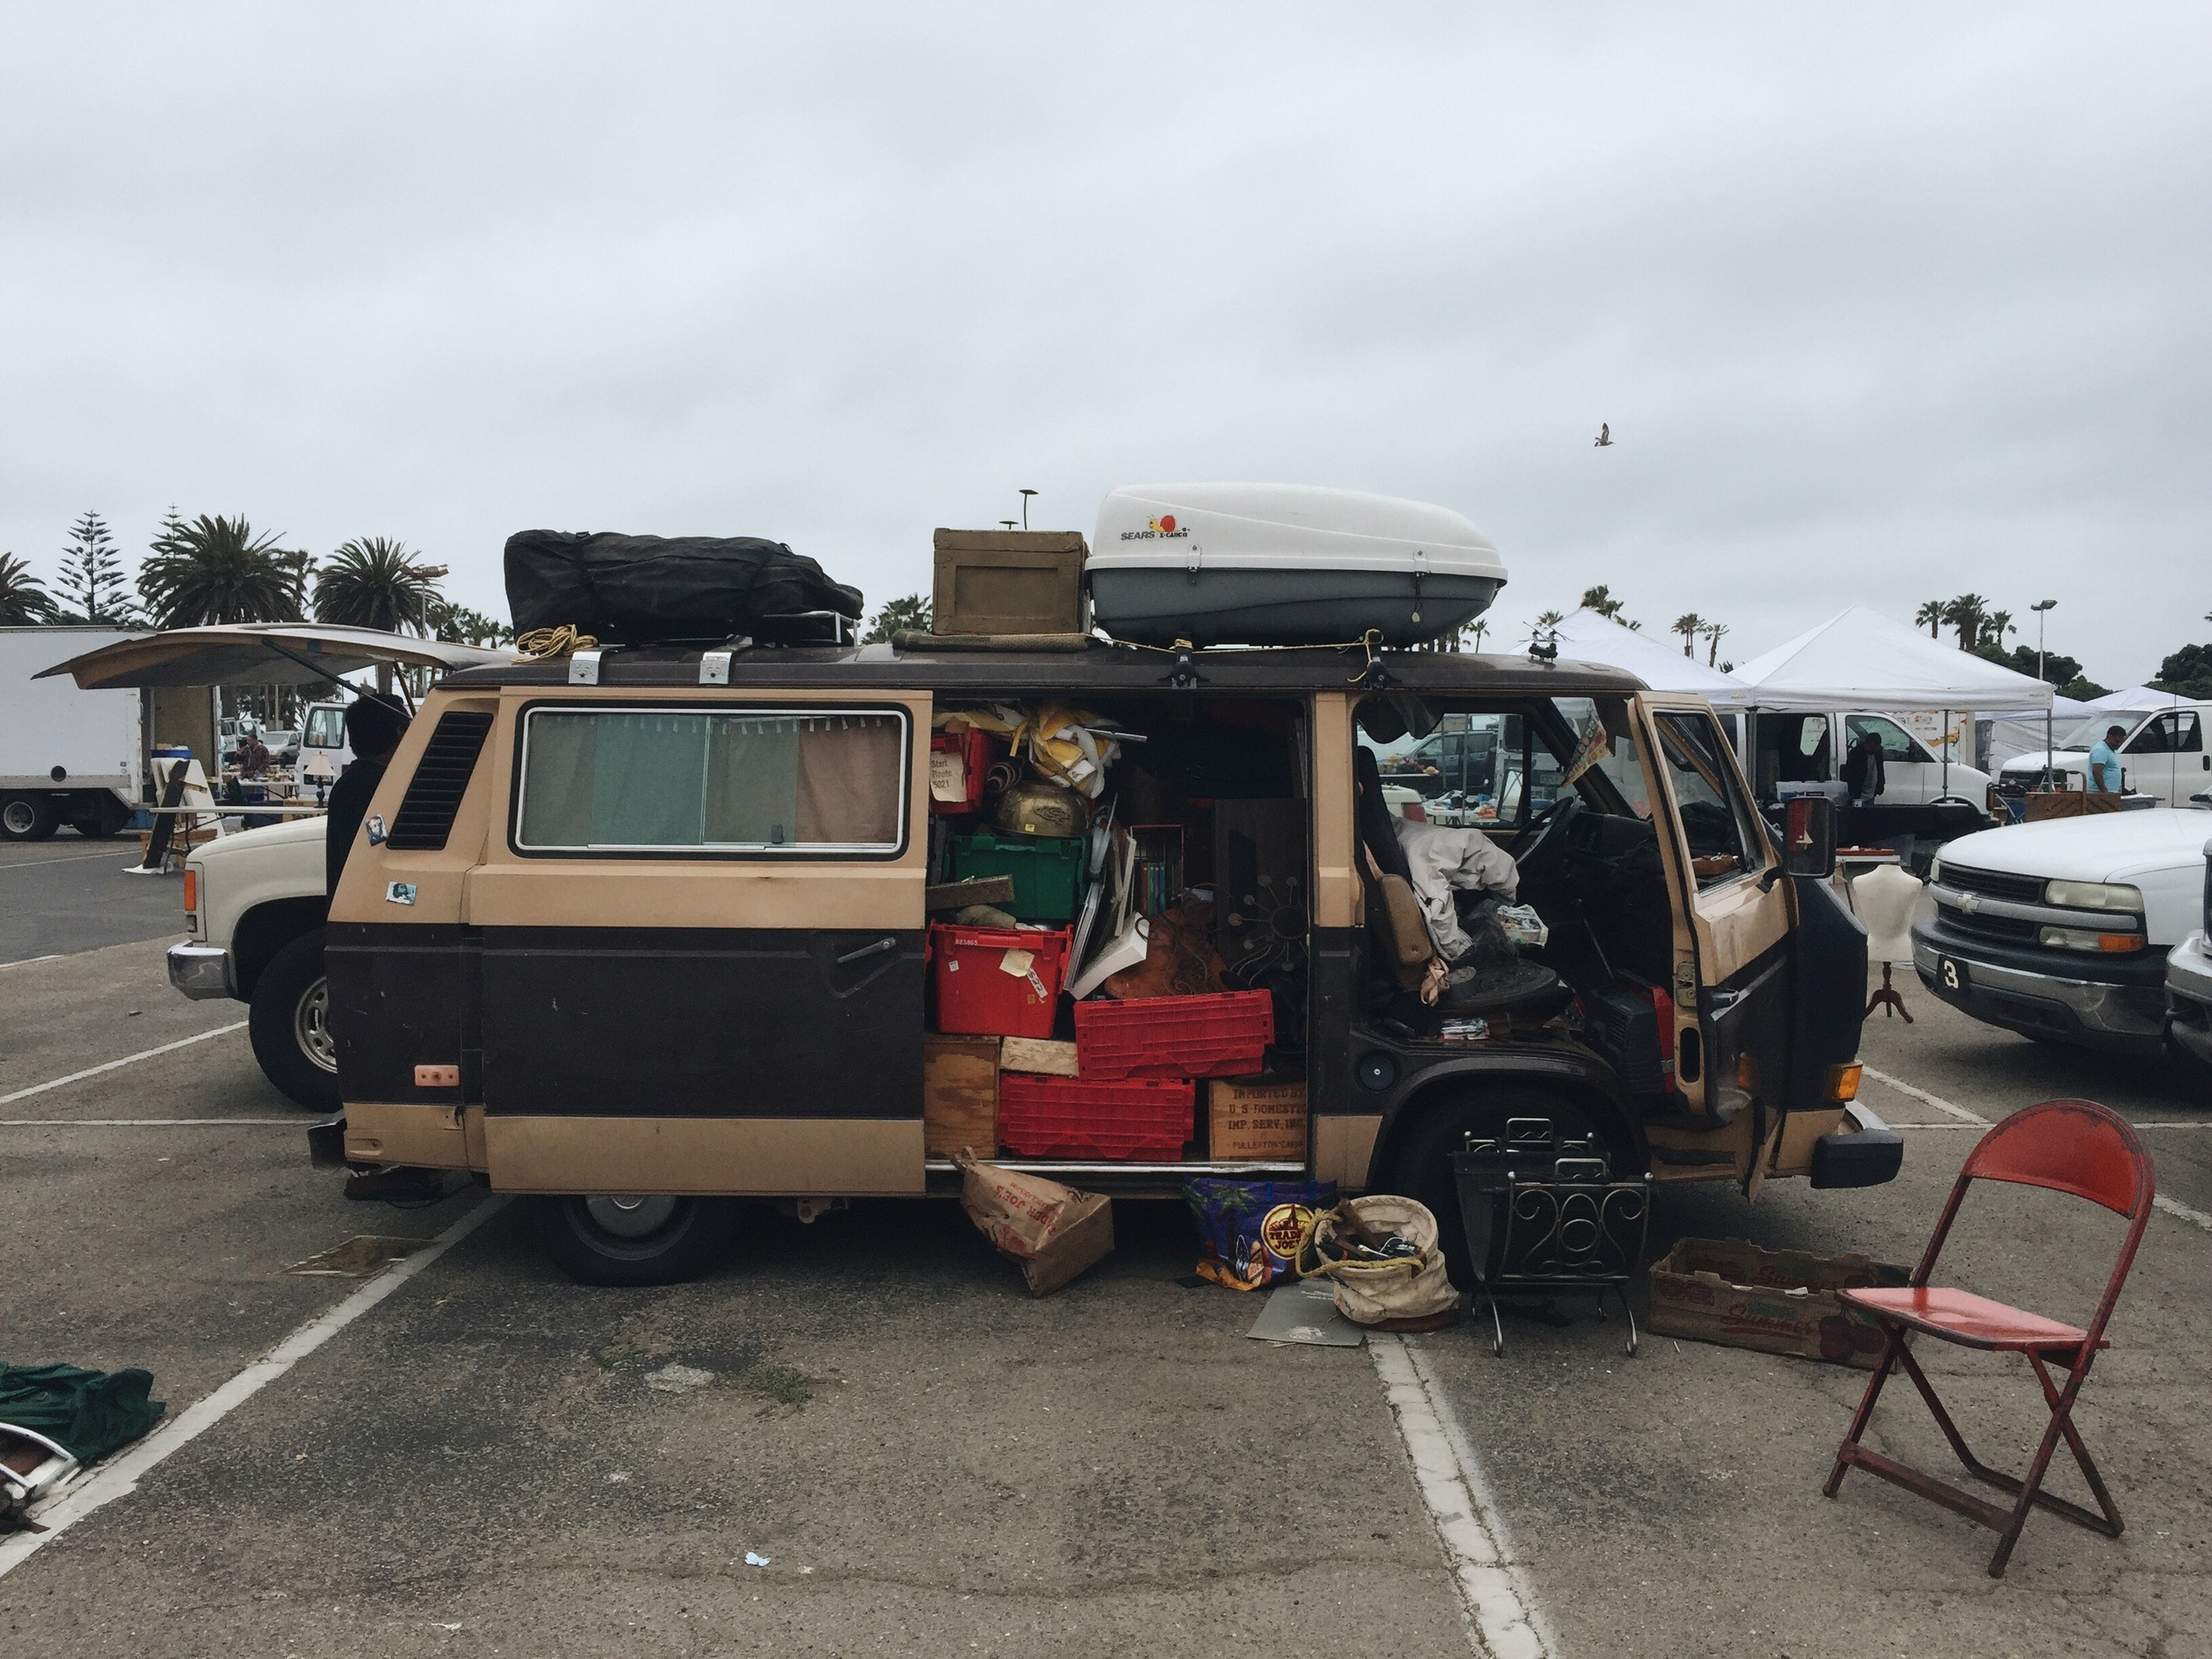 Some serious vanlife spotted at a swap meet in Ventura, California. I came to this flea market looking for a pot in order to cook my chili in for that night. I snagged two for five bucks...